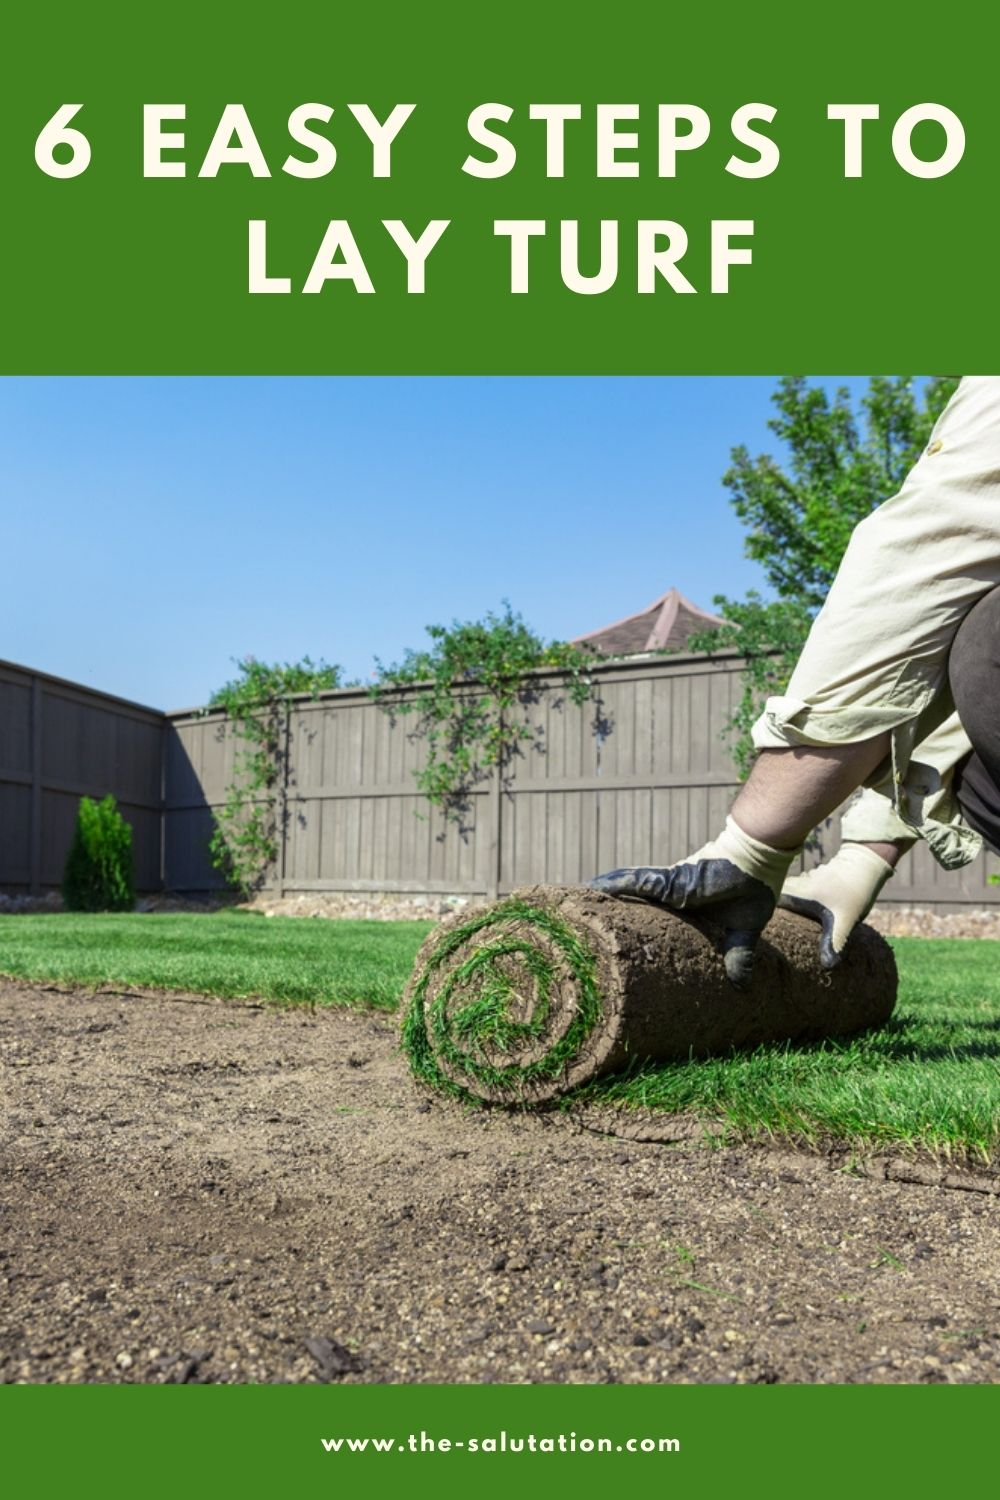 6 Easy Steps to Lay Turf 1